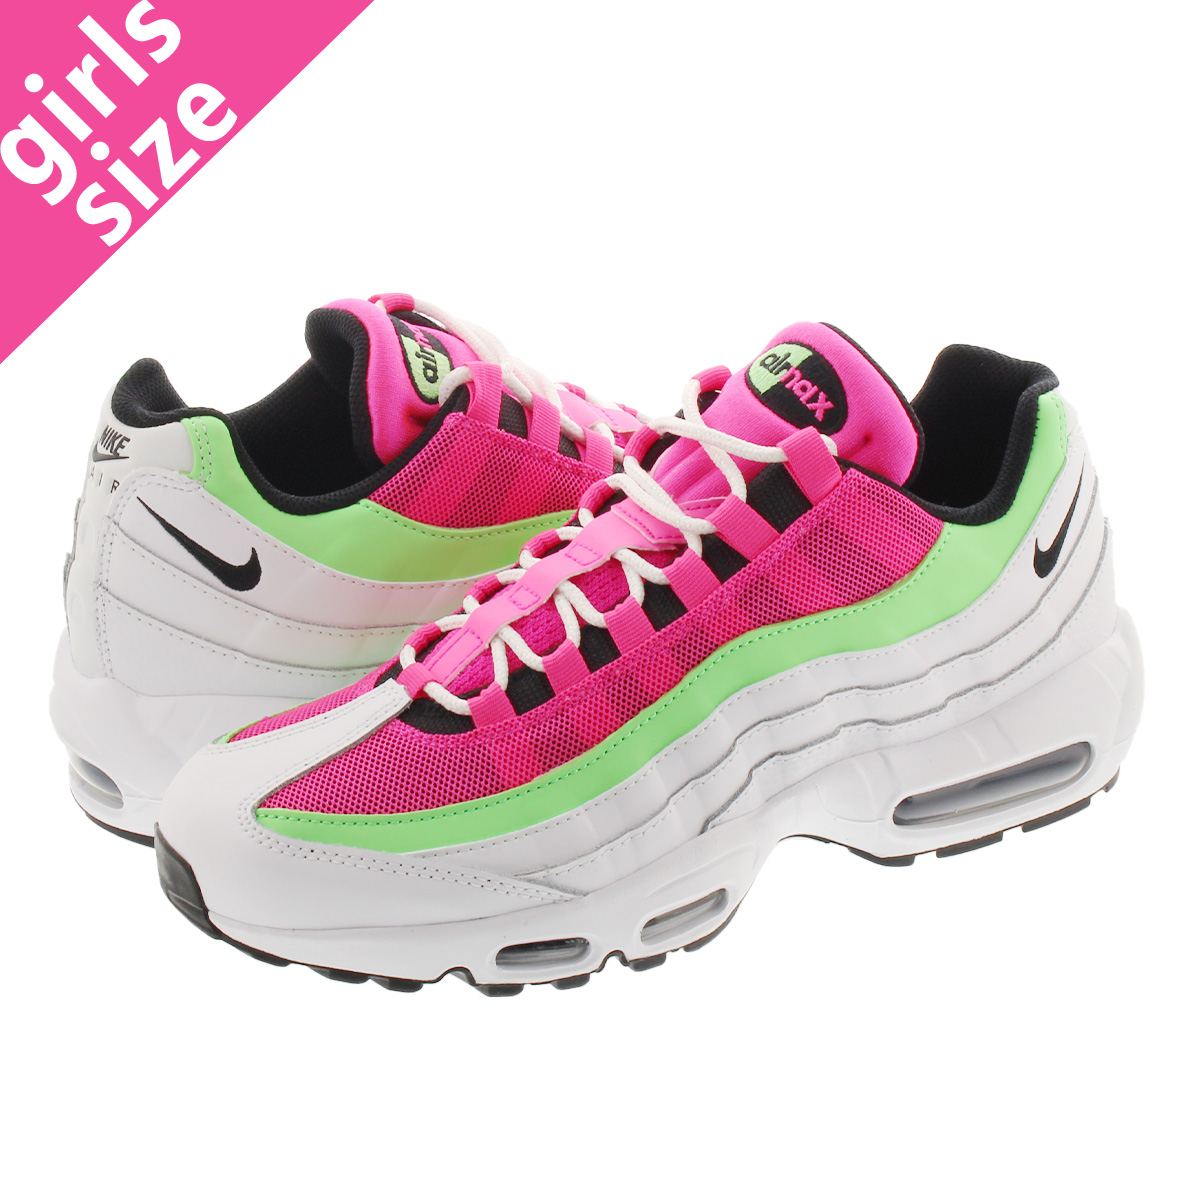 NIKE WMNS AIR MAX 95 ナイキ ウィメンズ エア マックス 95 WHITE/BLACK/HYPER PINK/ILLUSION GREEN cj0624-101